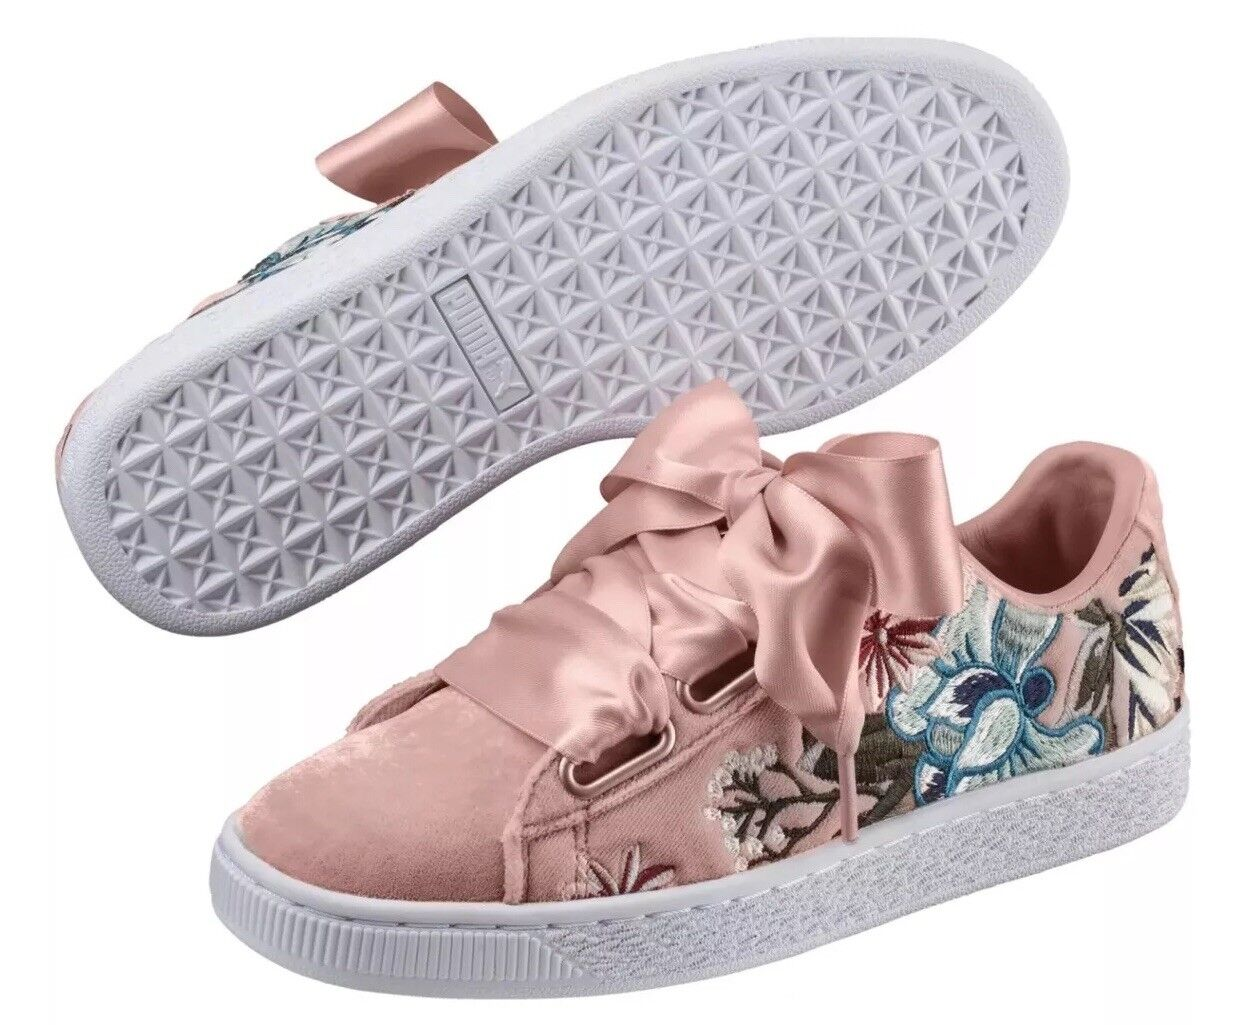 PUMA  Basket Heart Hyper Hyper Hyper Embroidered Pink Size 6.5 37 New In Box 68854e